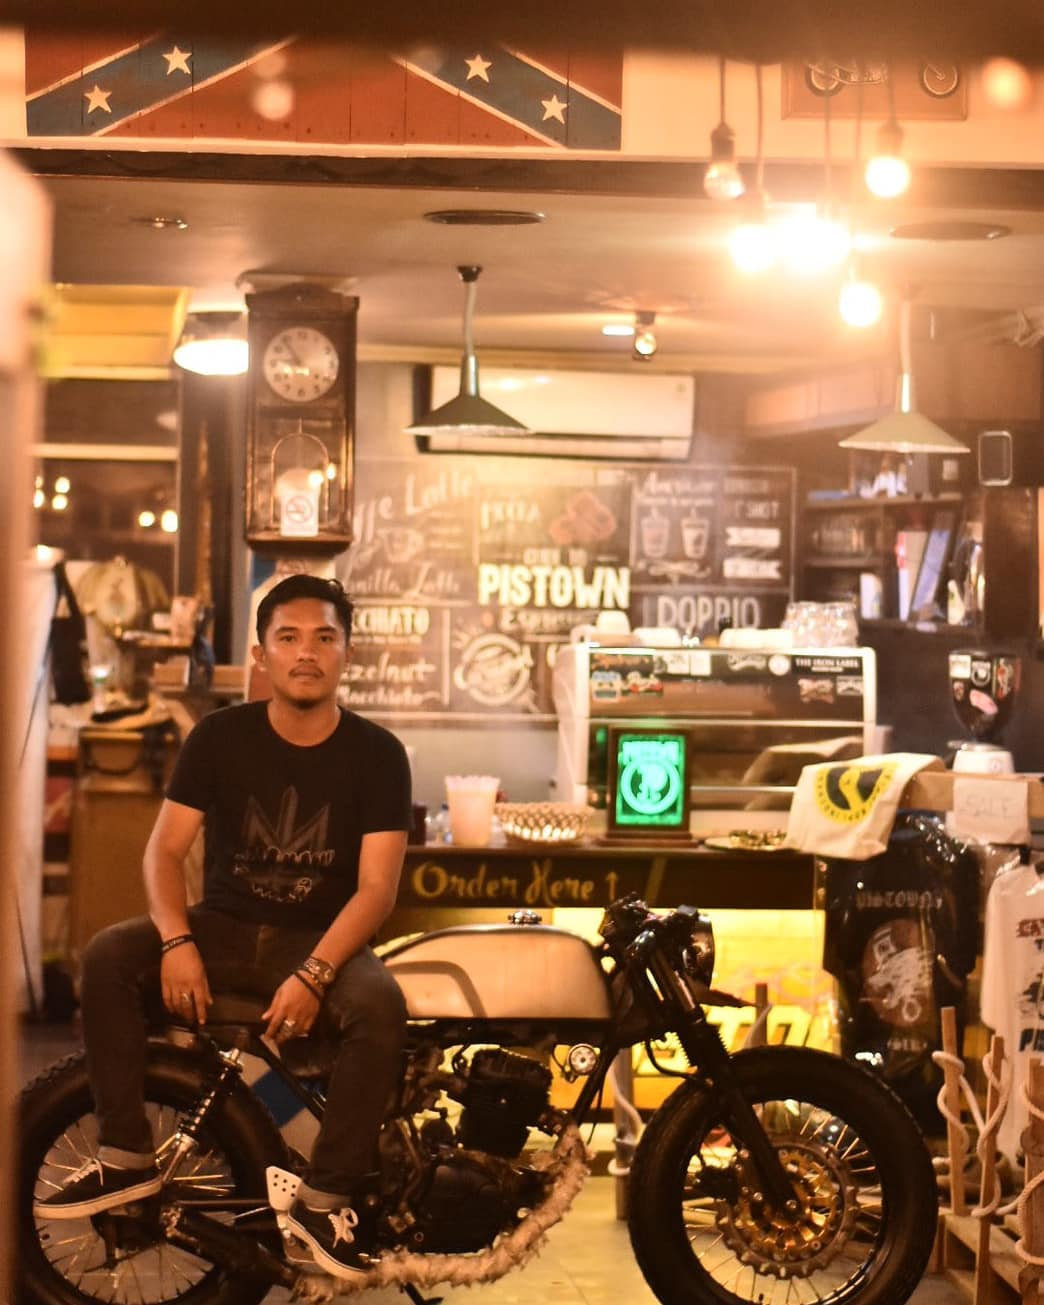 Cafe Pistown Honda Tiger Caferacer